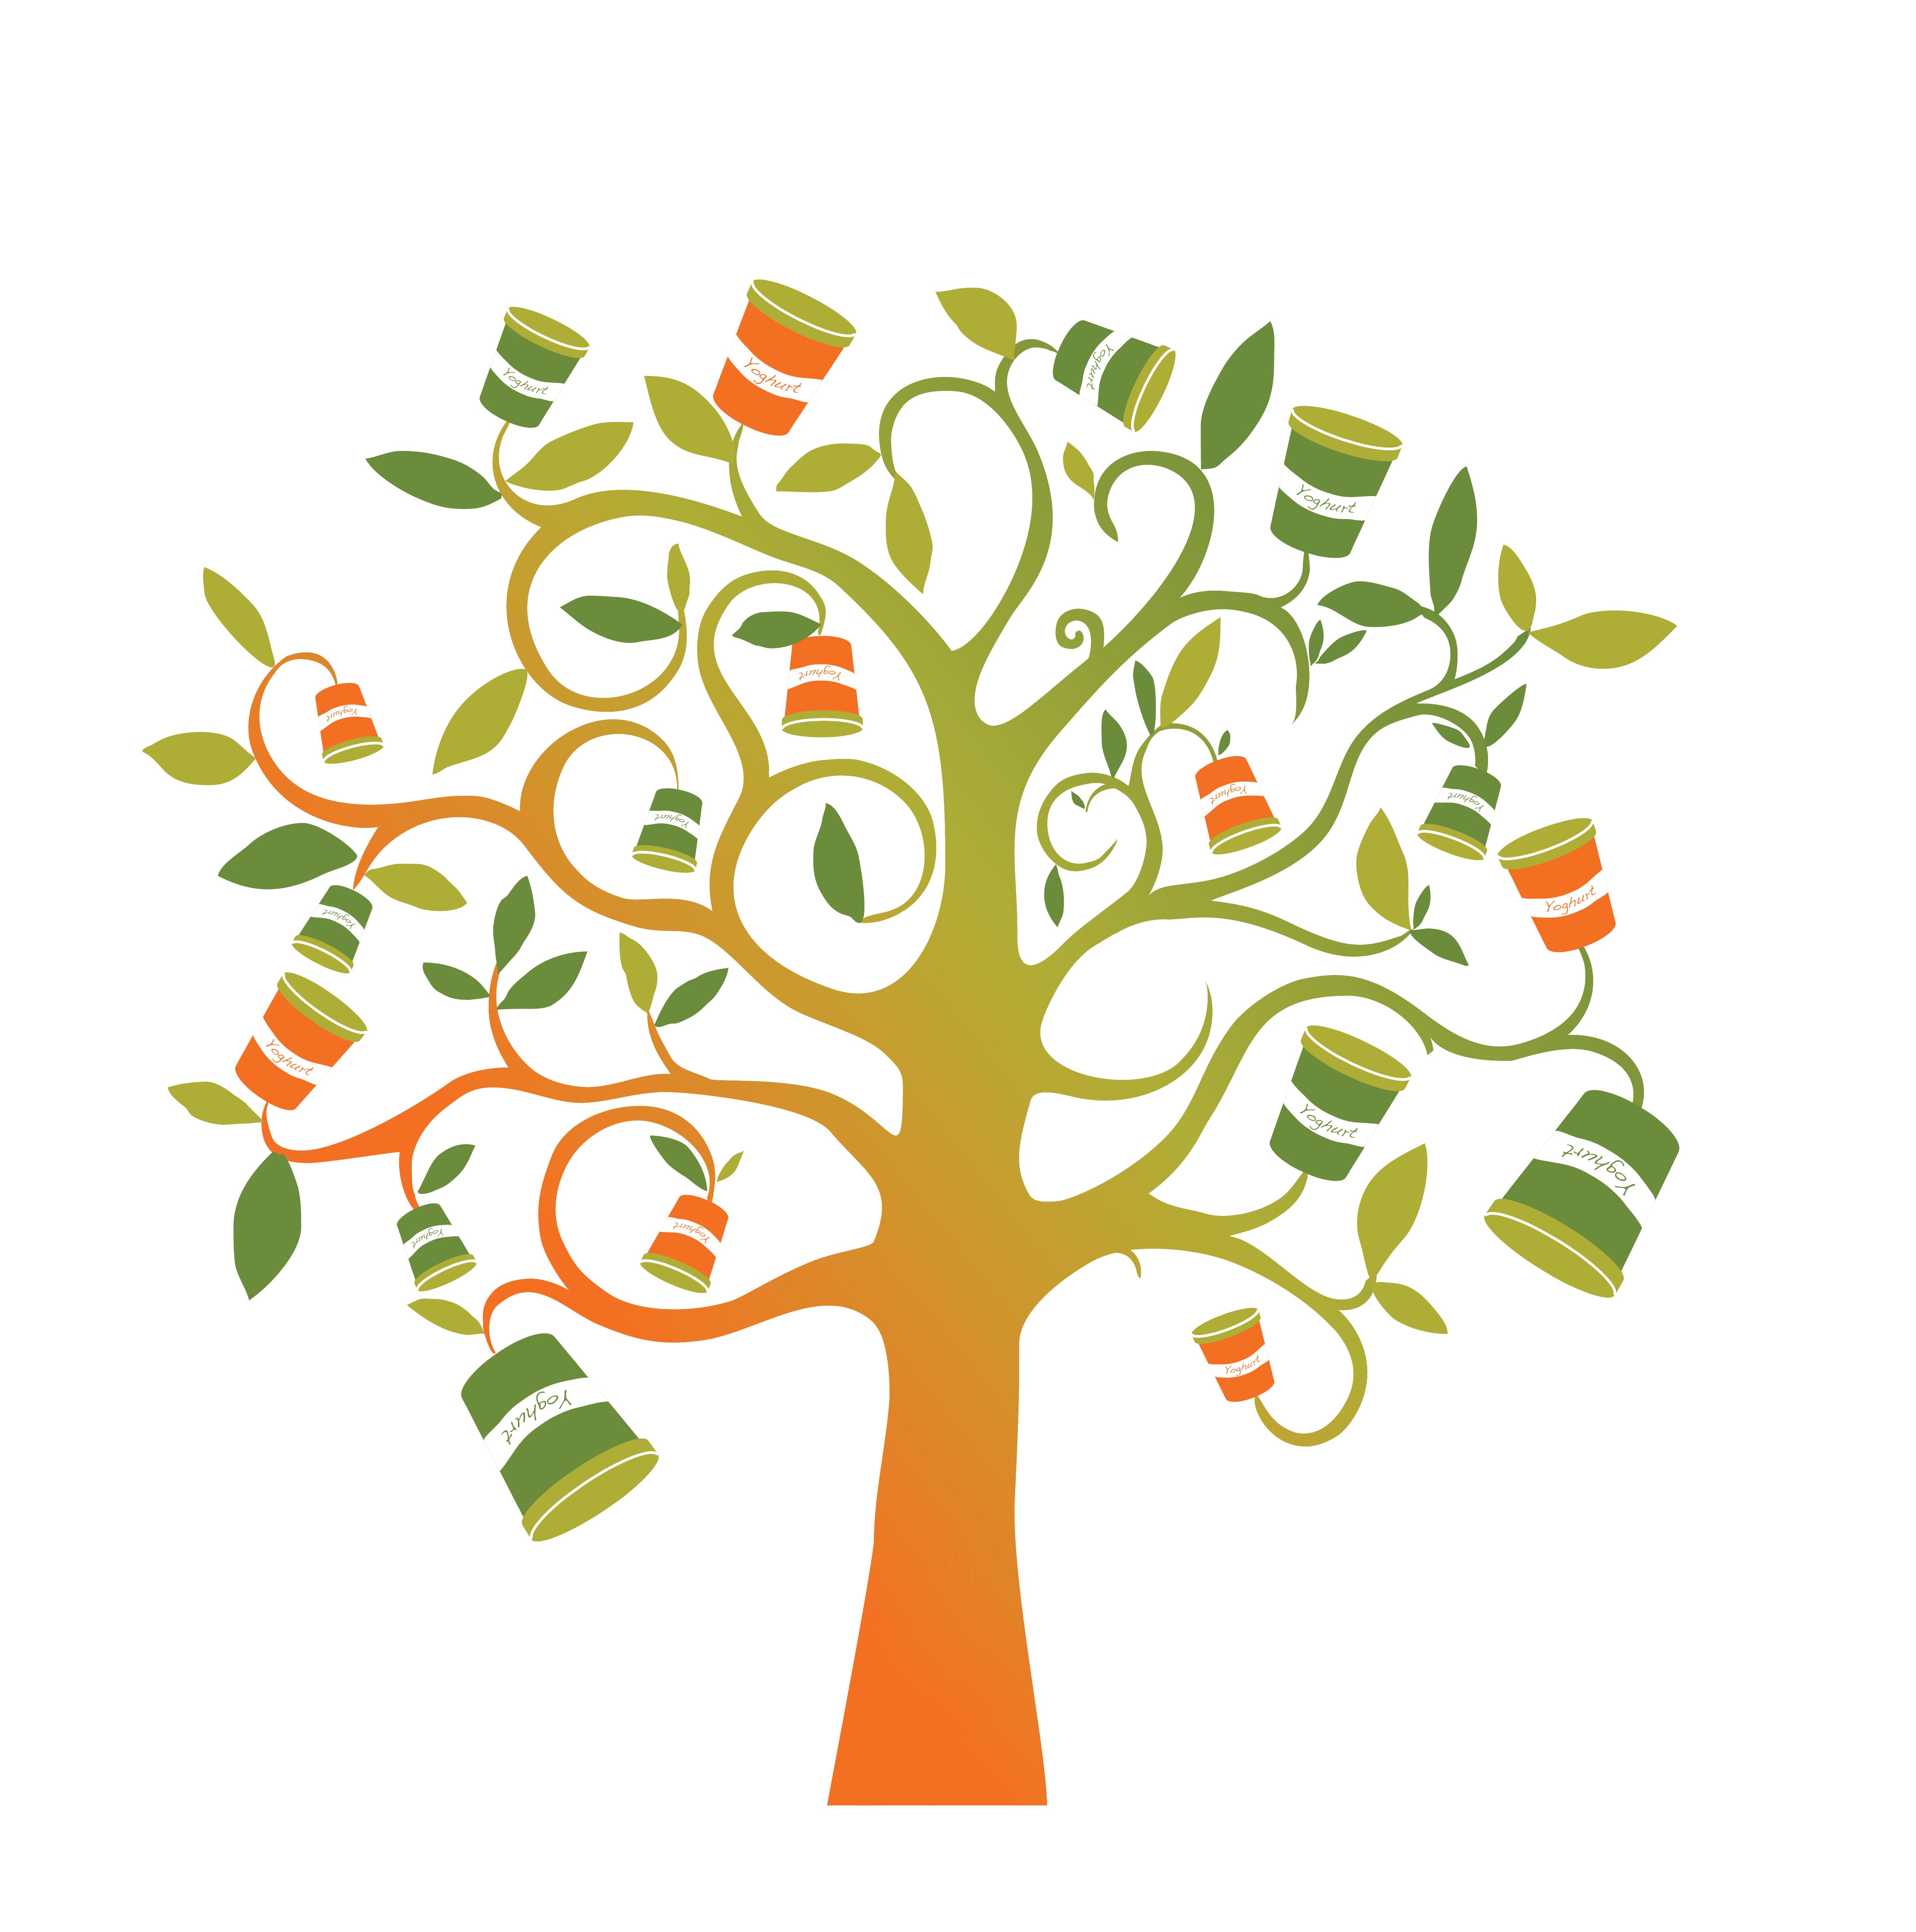 Food clipart tree. Yaps conference to view